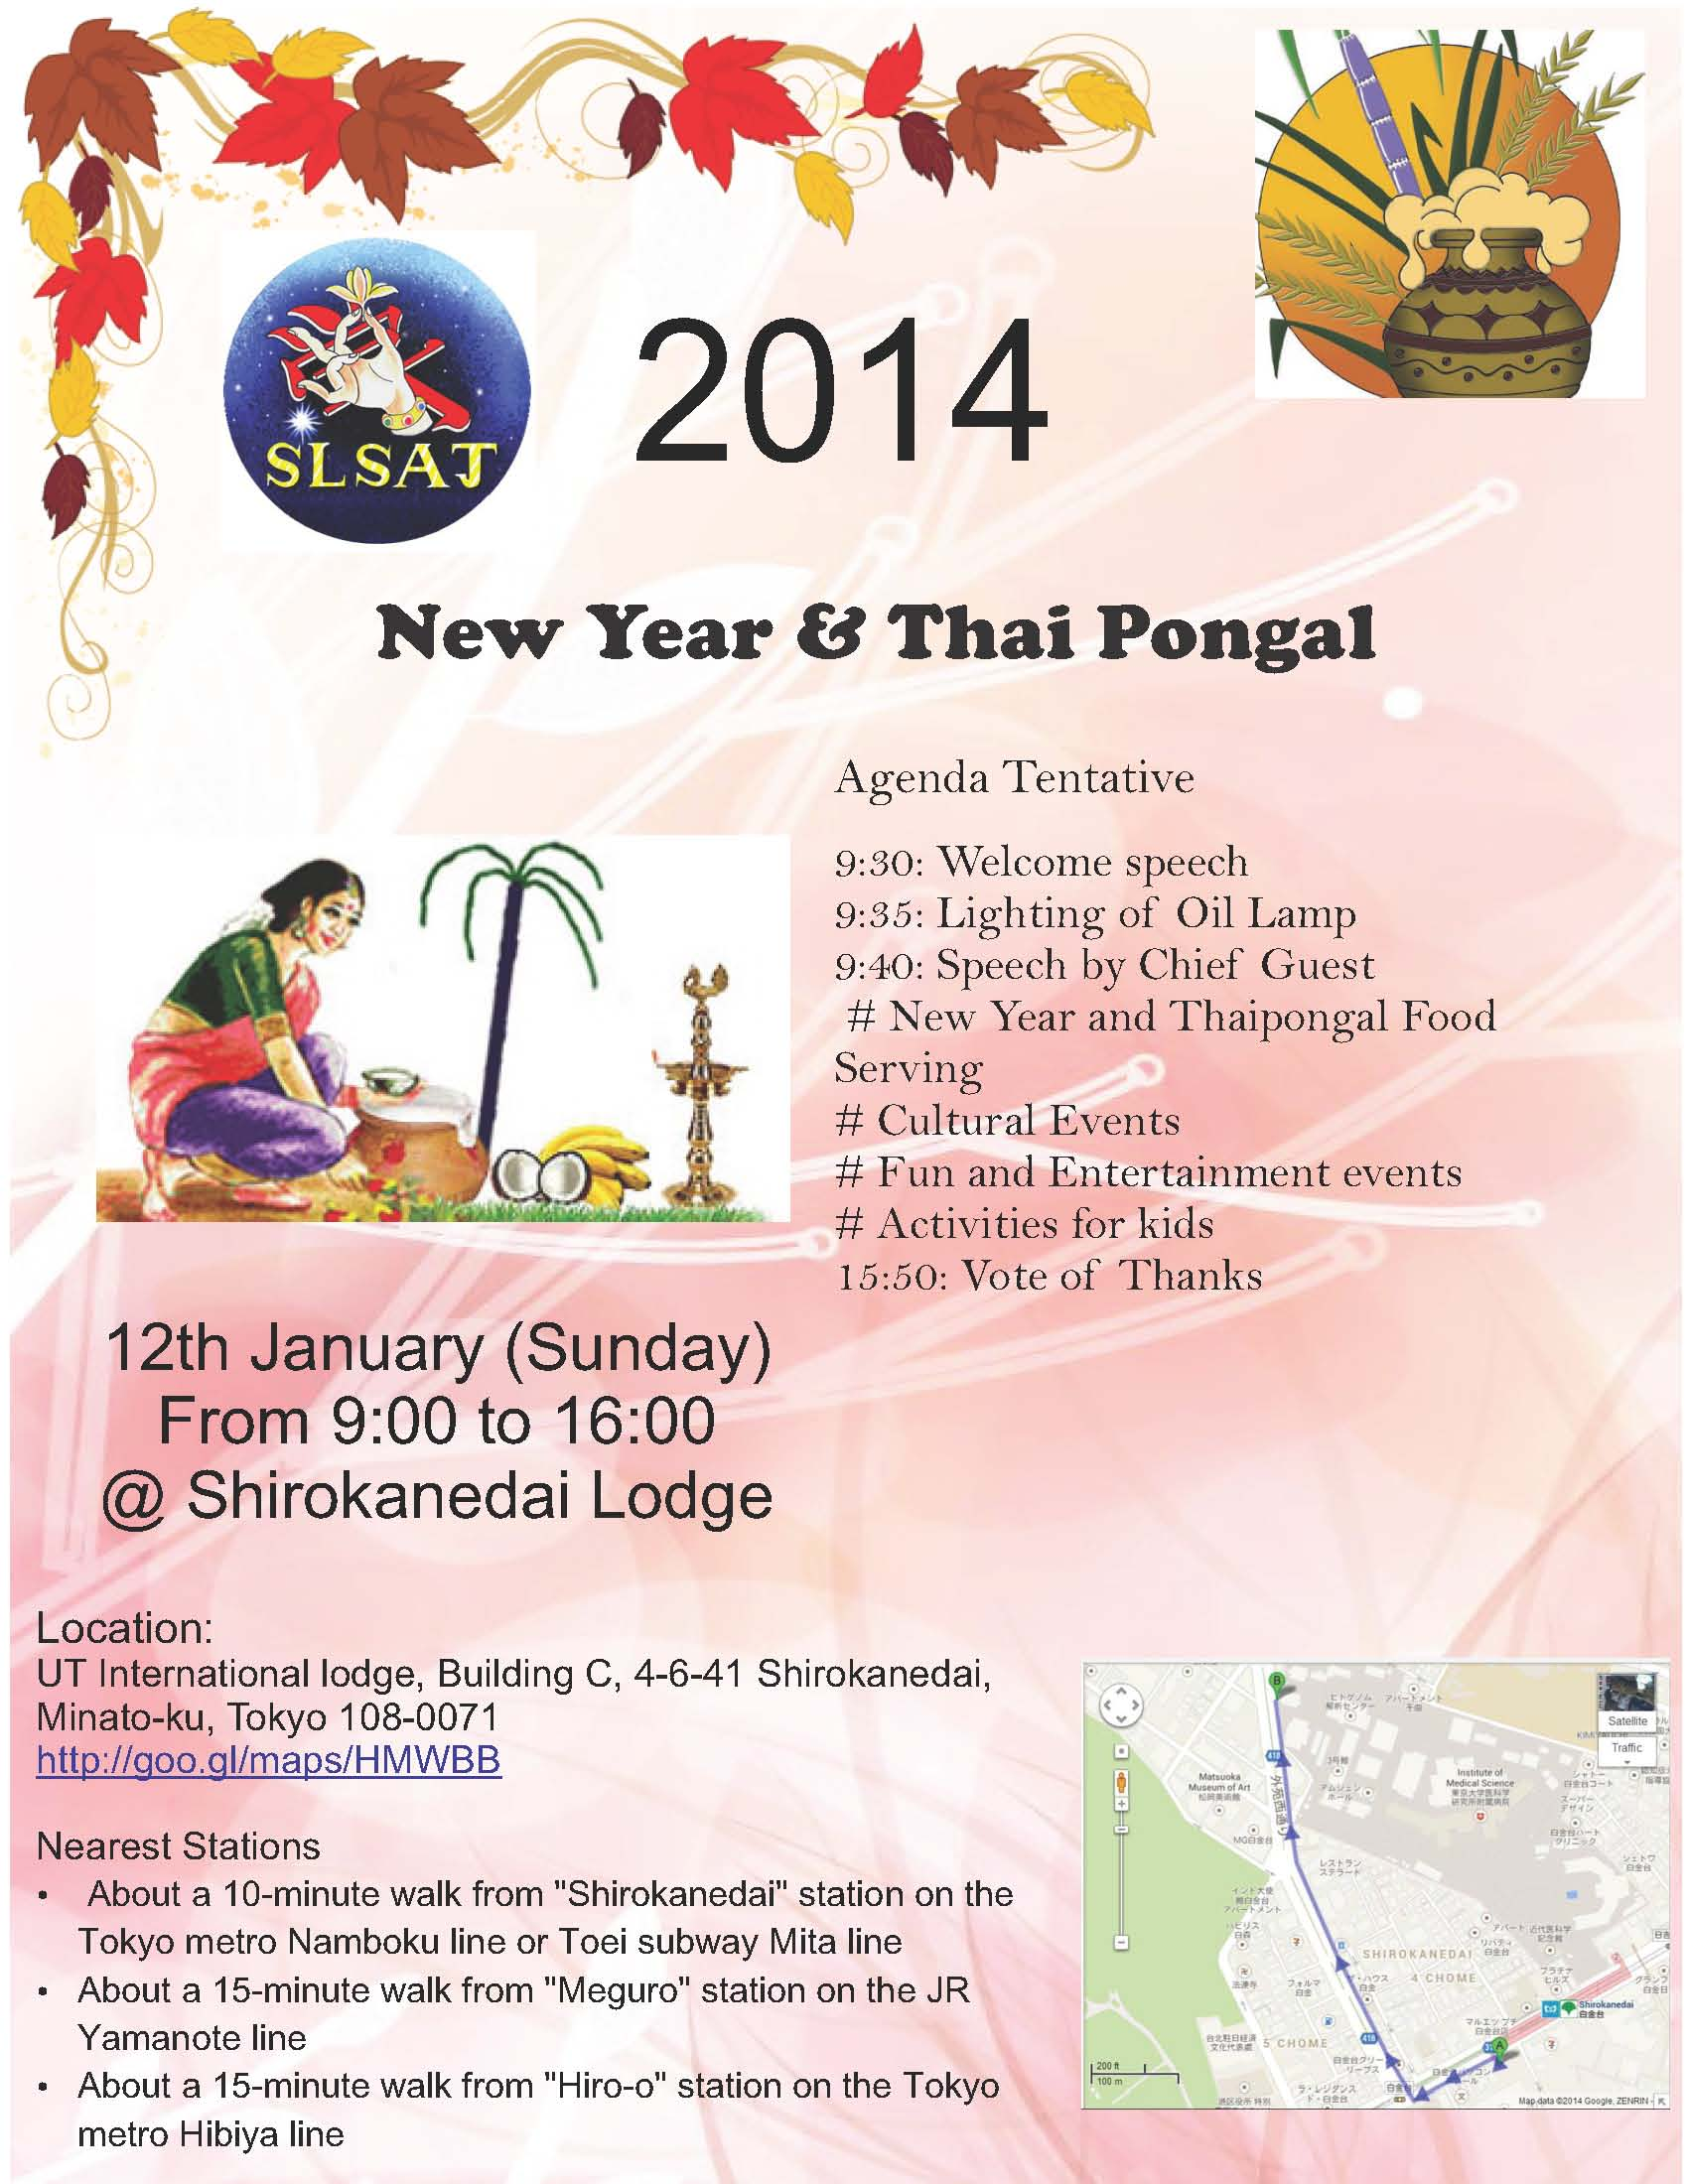 New year and Thaipongal 2014 SLSAJ